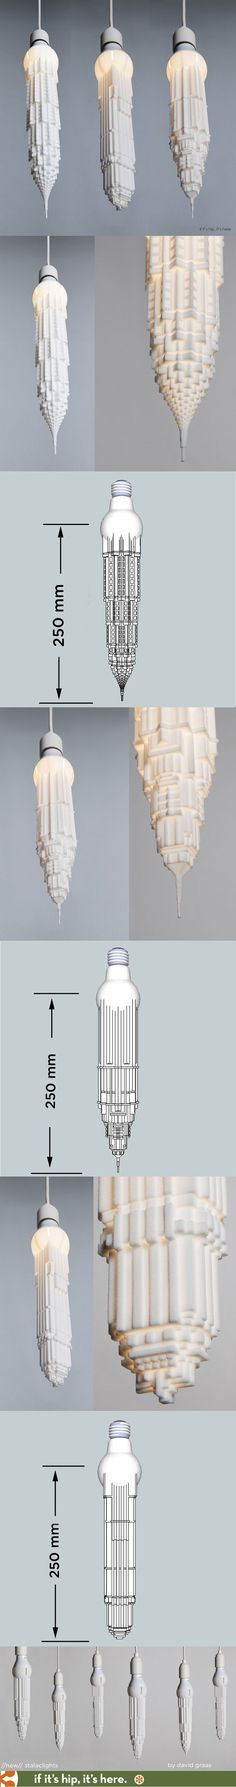 Stalaclights - 3D printed Upside Down Art Deco Skyscrapers on LED Bulbs make for awesome pendant lights. #artdecofurniture